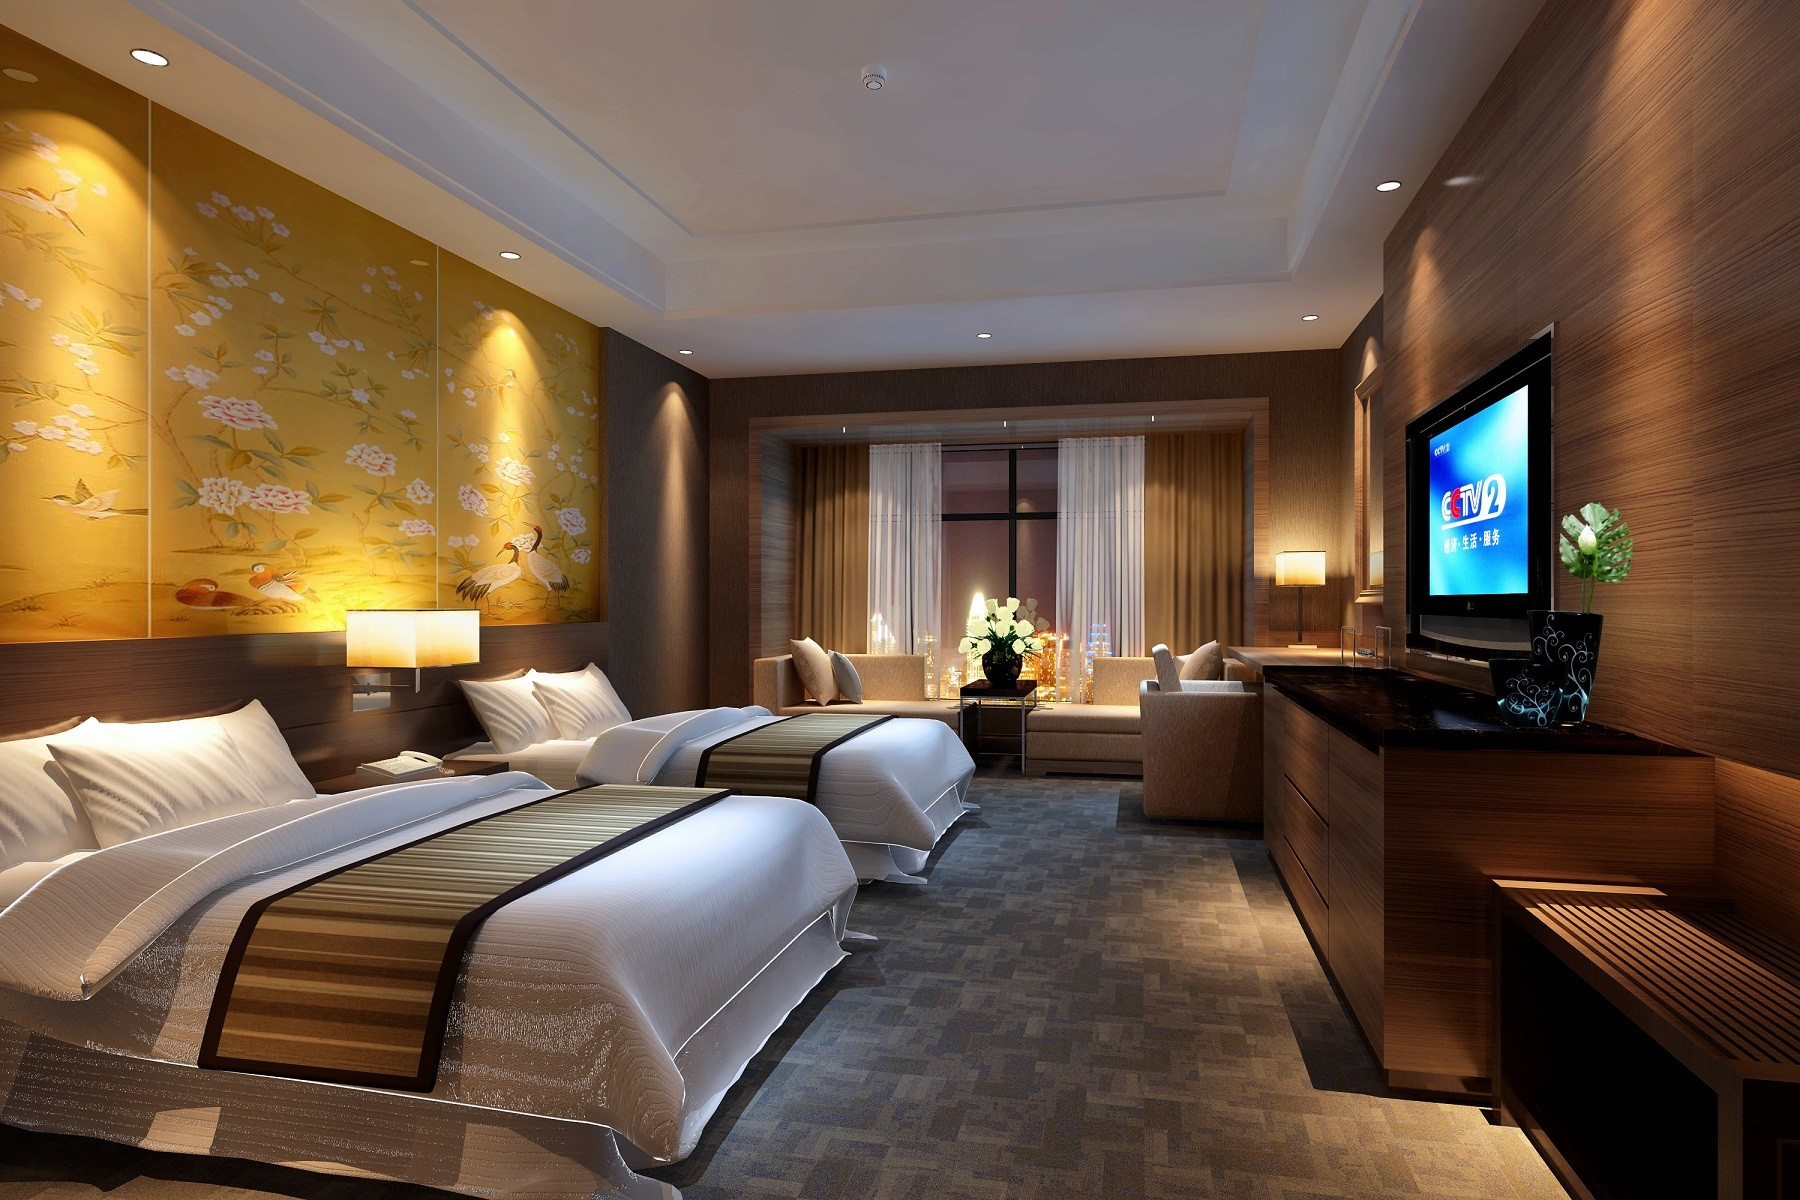 Accommodations for Hotel room interior images